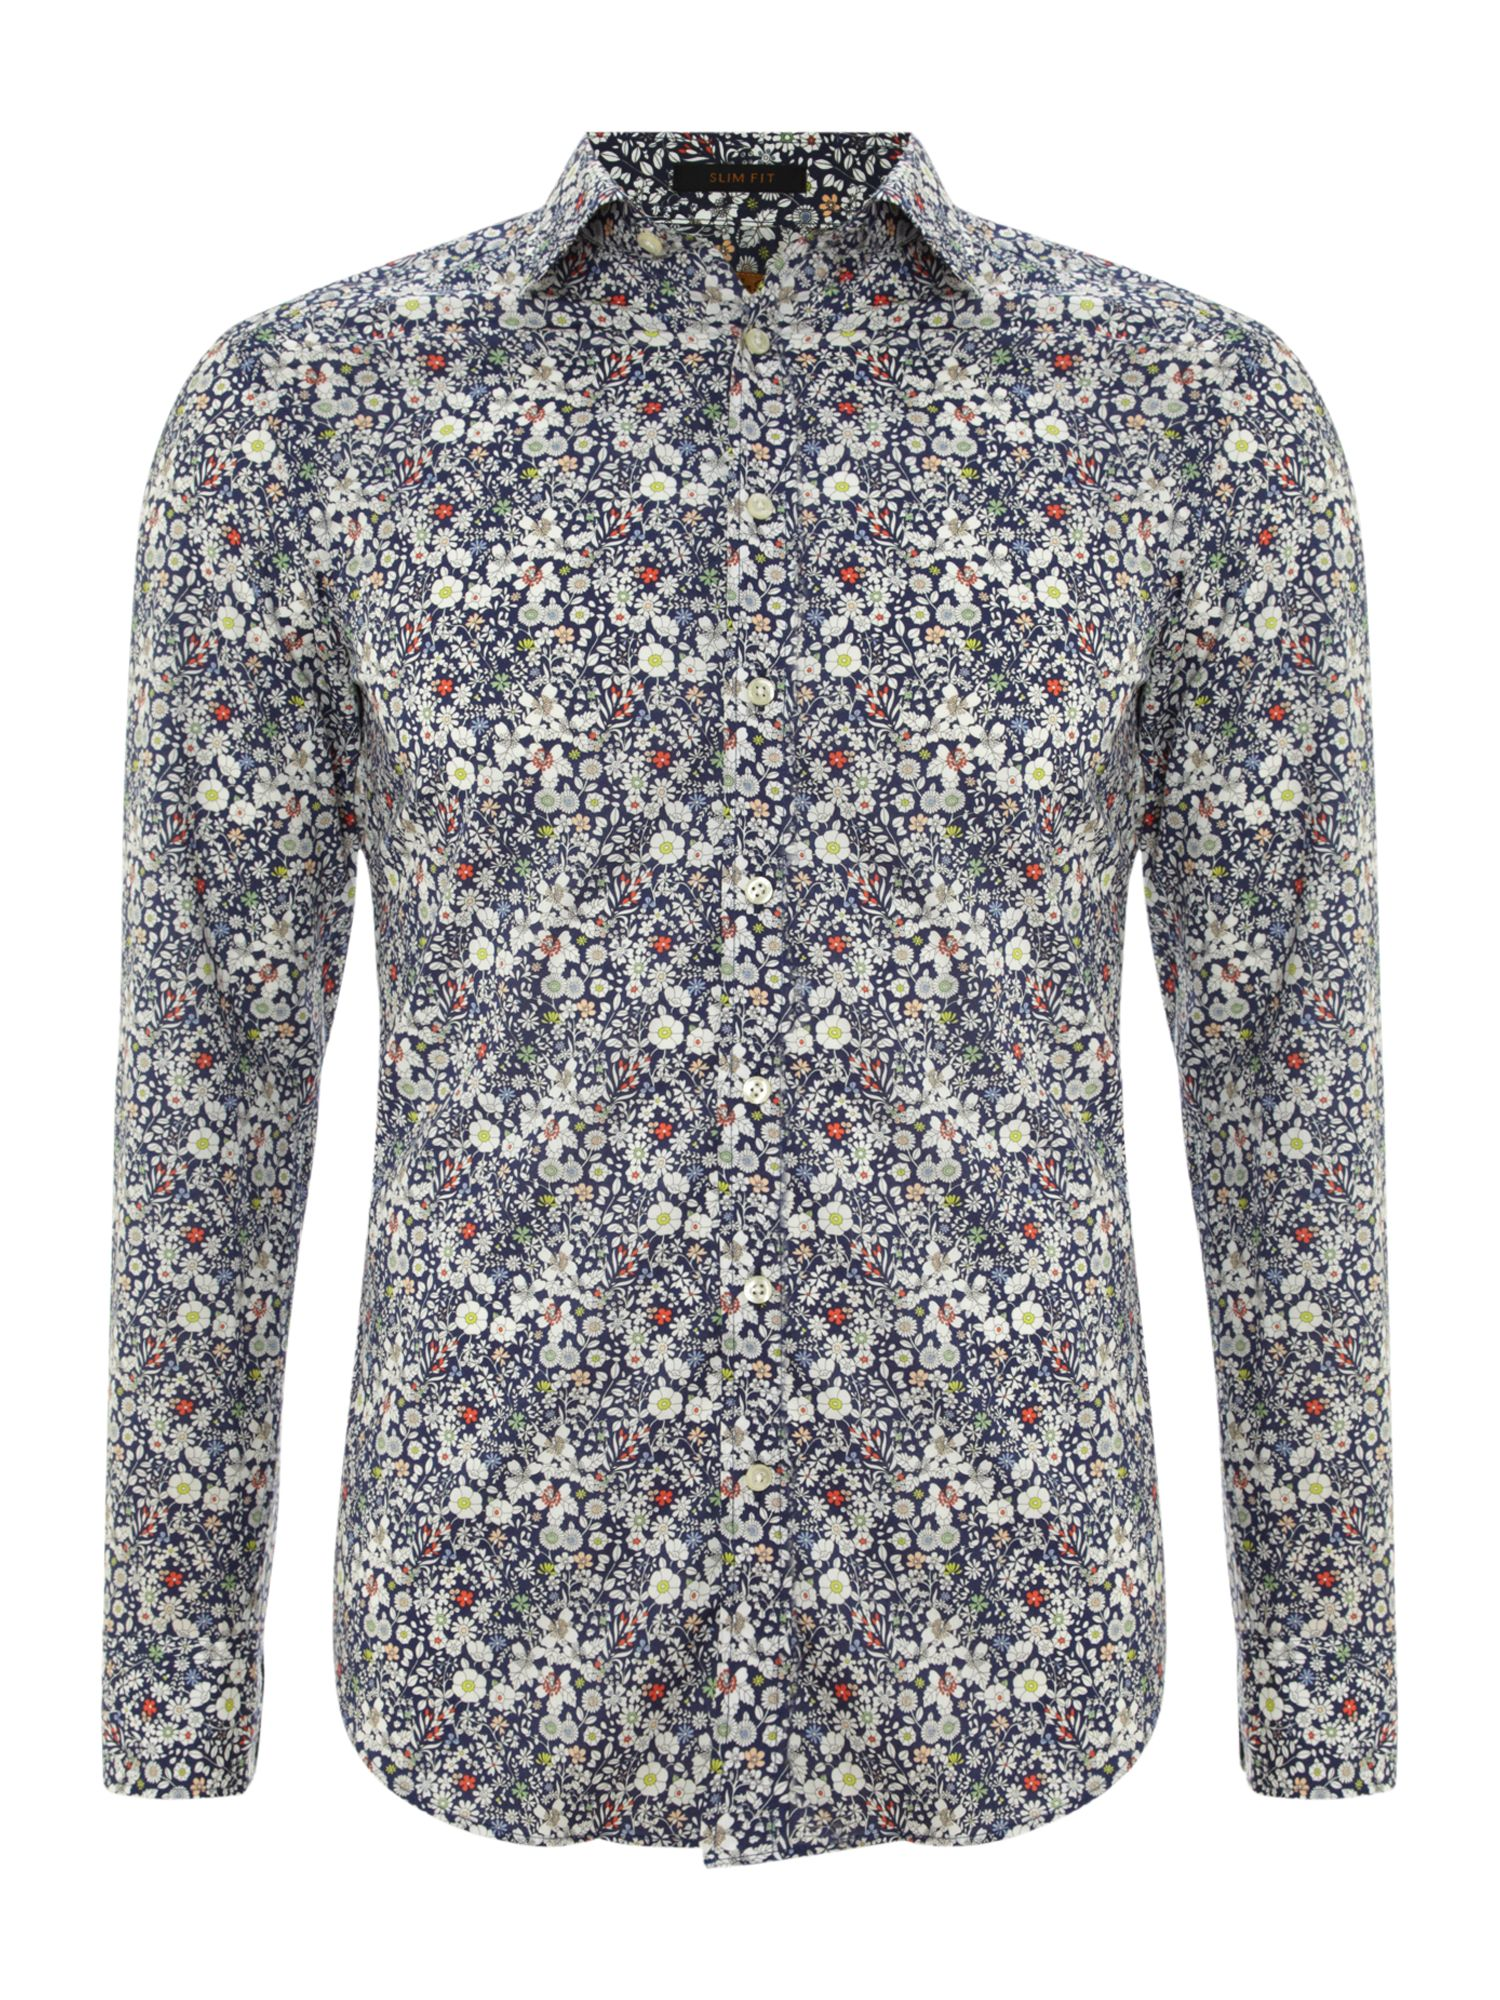 Floral print 3 button cuff shirt